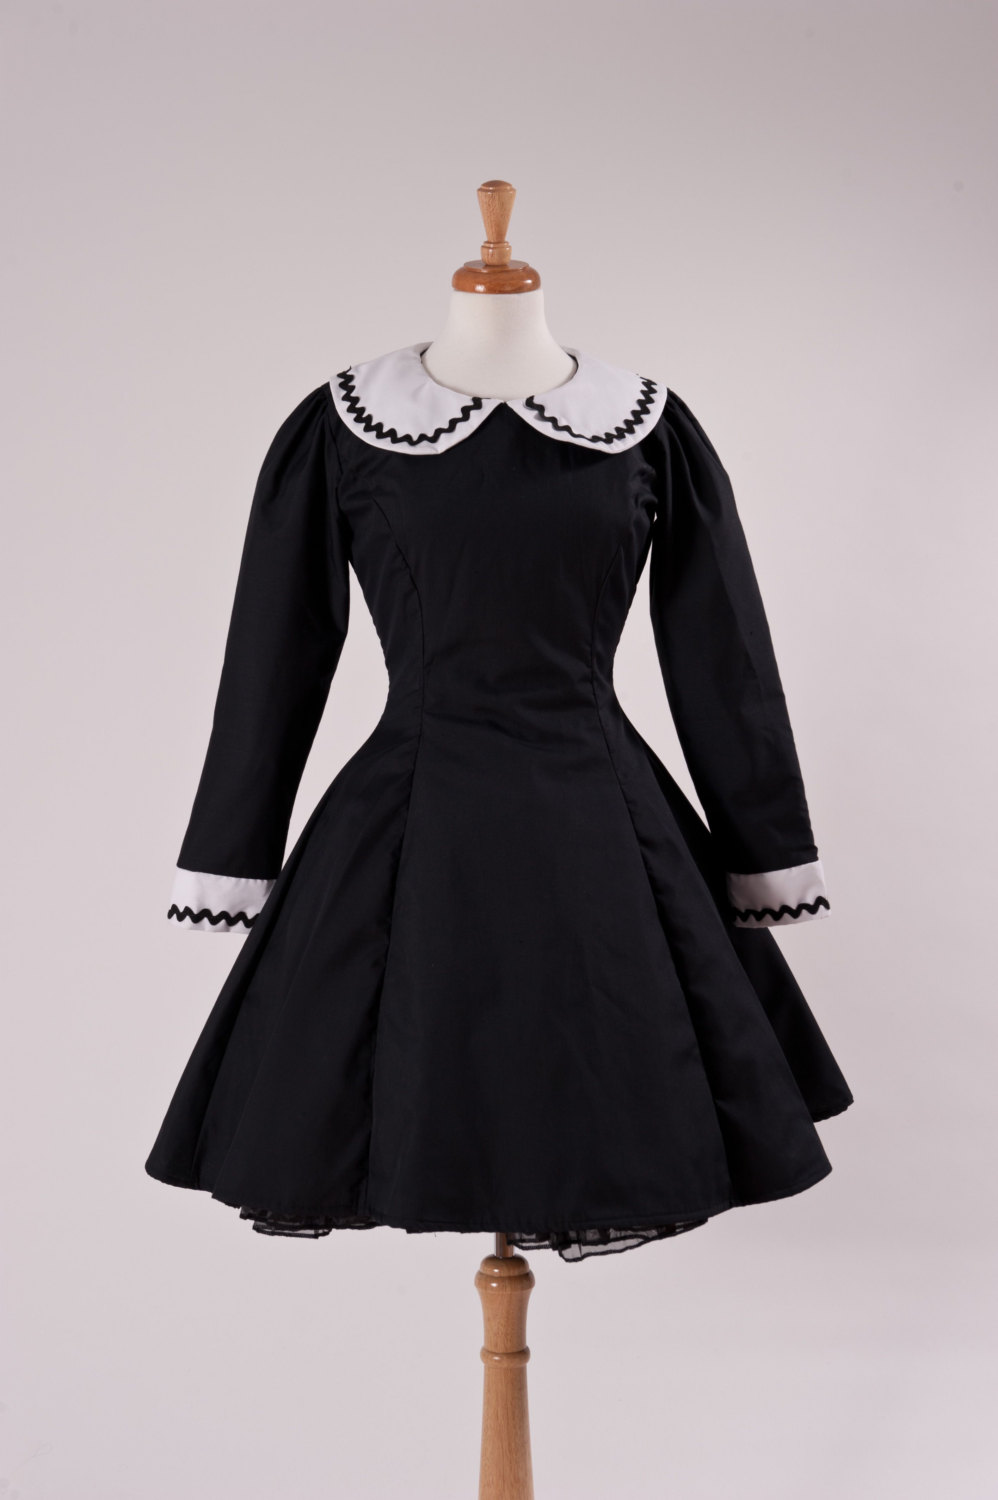 Gothic Lolita Black Aline Dress with Peter Pan Collar A-line Wednesday Aadams Lenore Custom Size Made to Measure Plus Size Cotton Dress